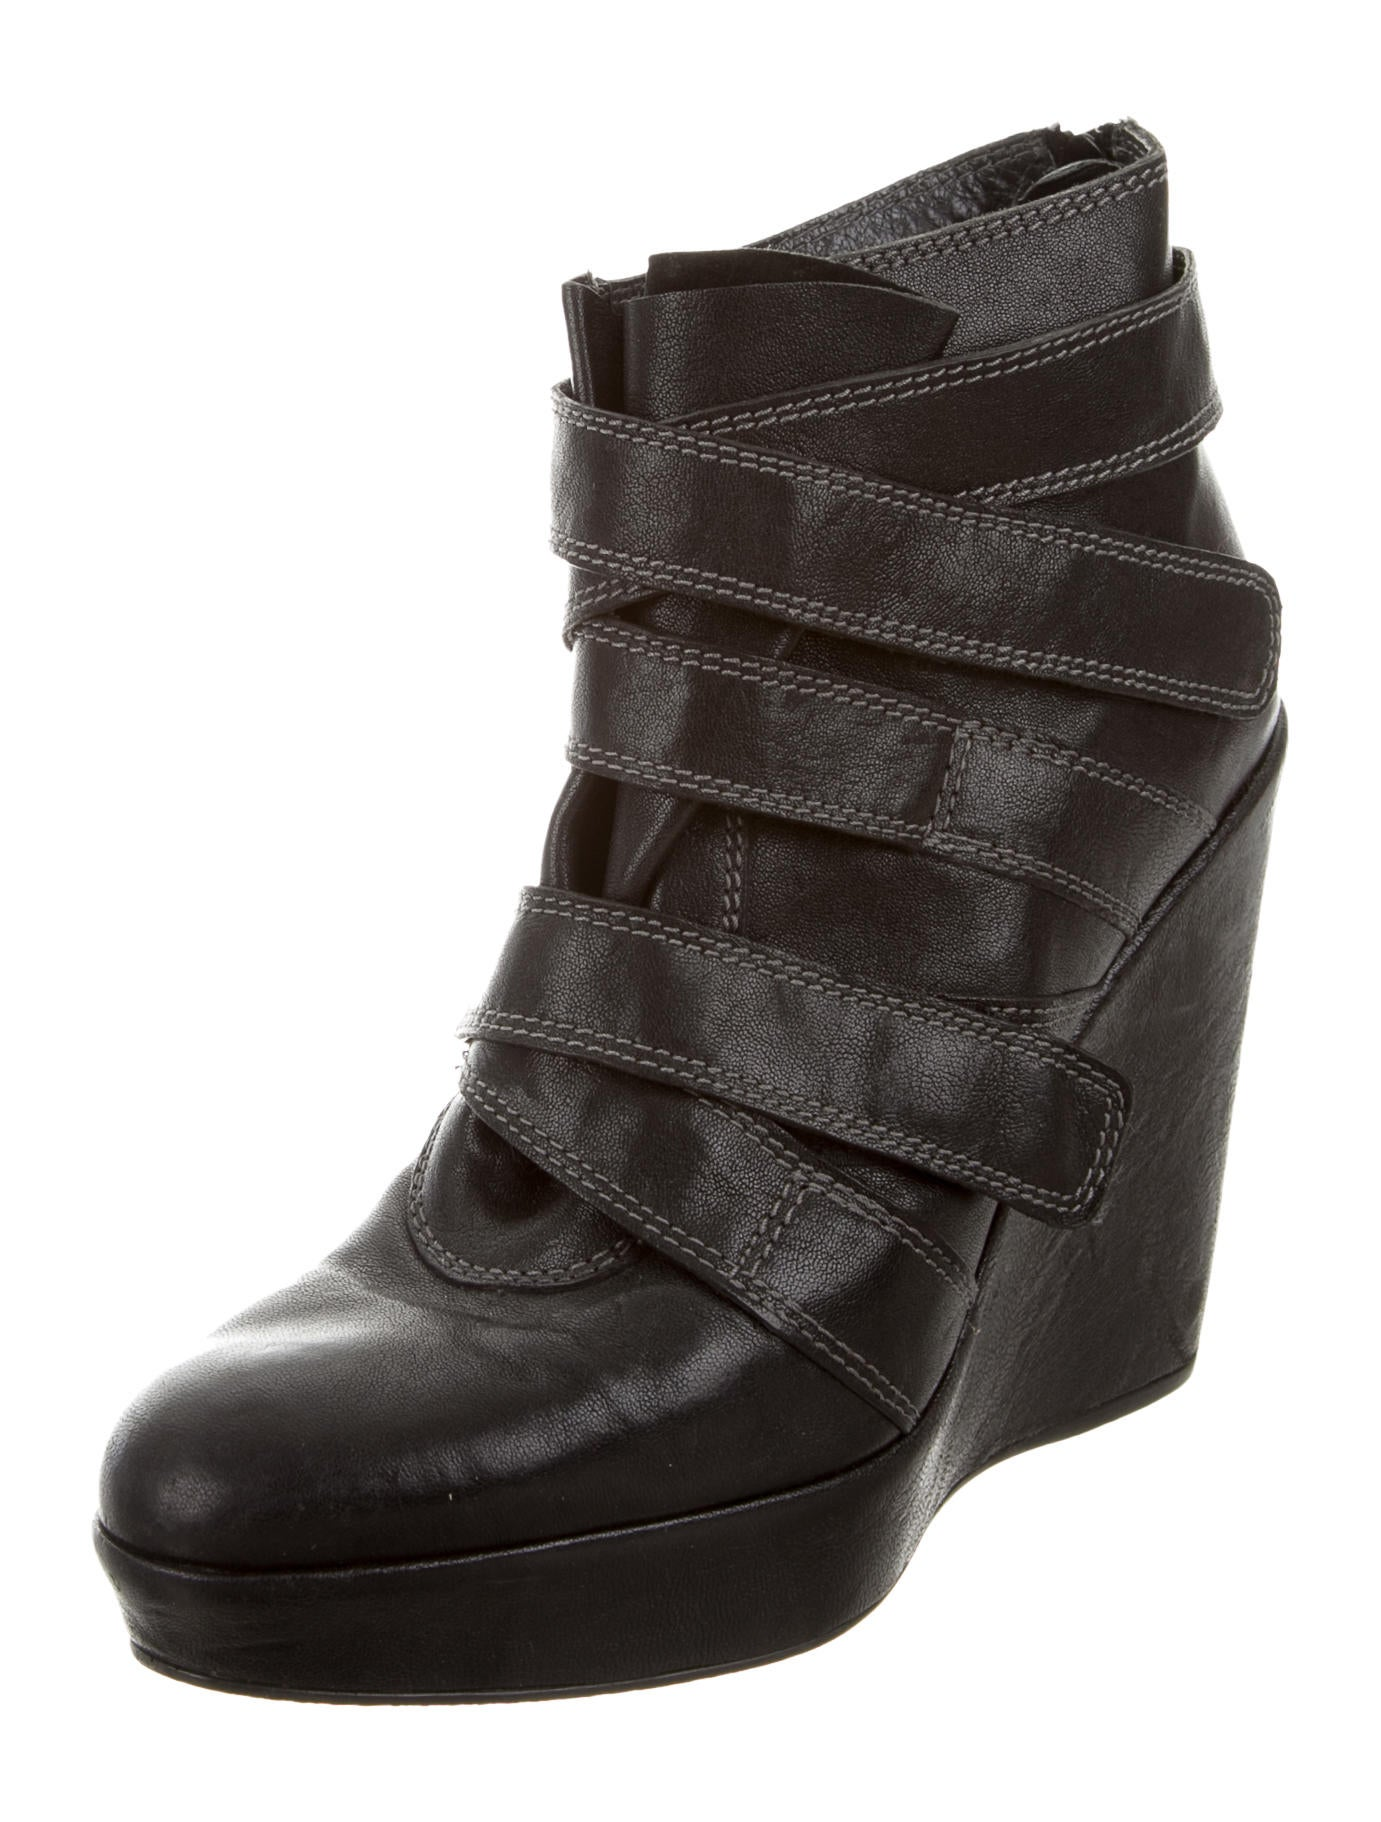 Find great deals on eBay for leather wedge ankle boots. Shop with confidence.